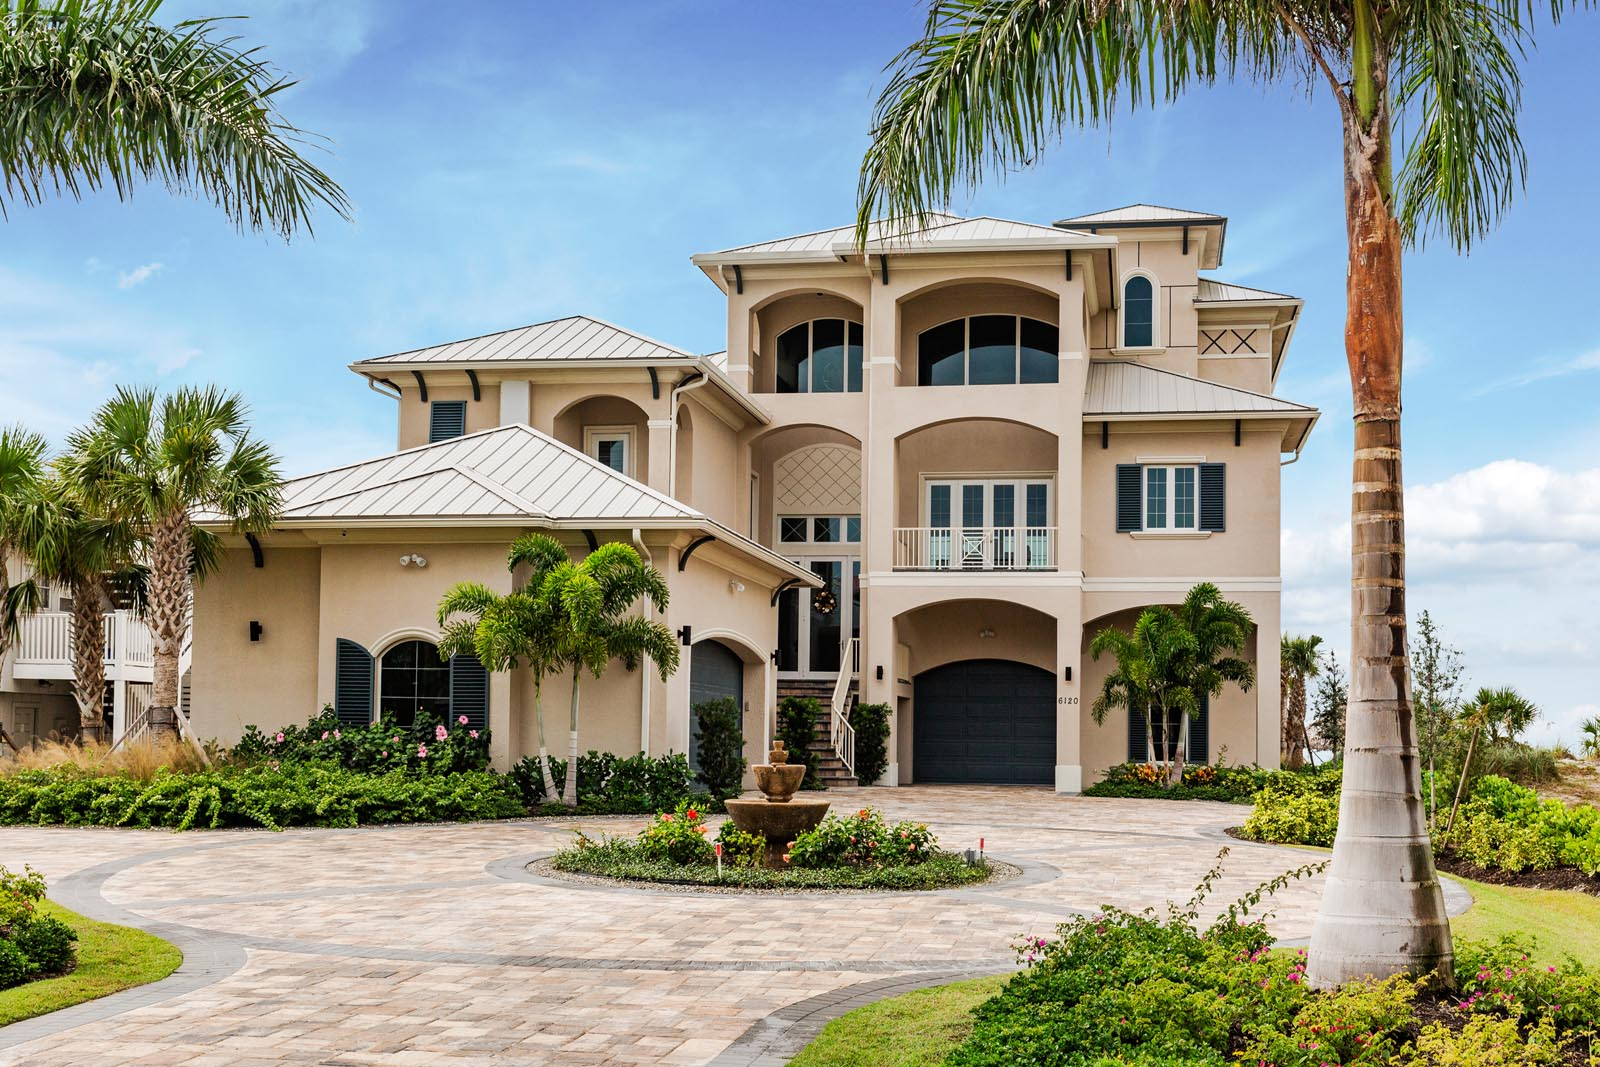 Gargiula construction southwest florida custom home for Southwest home builders